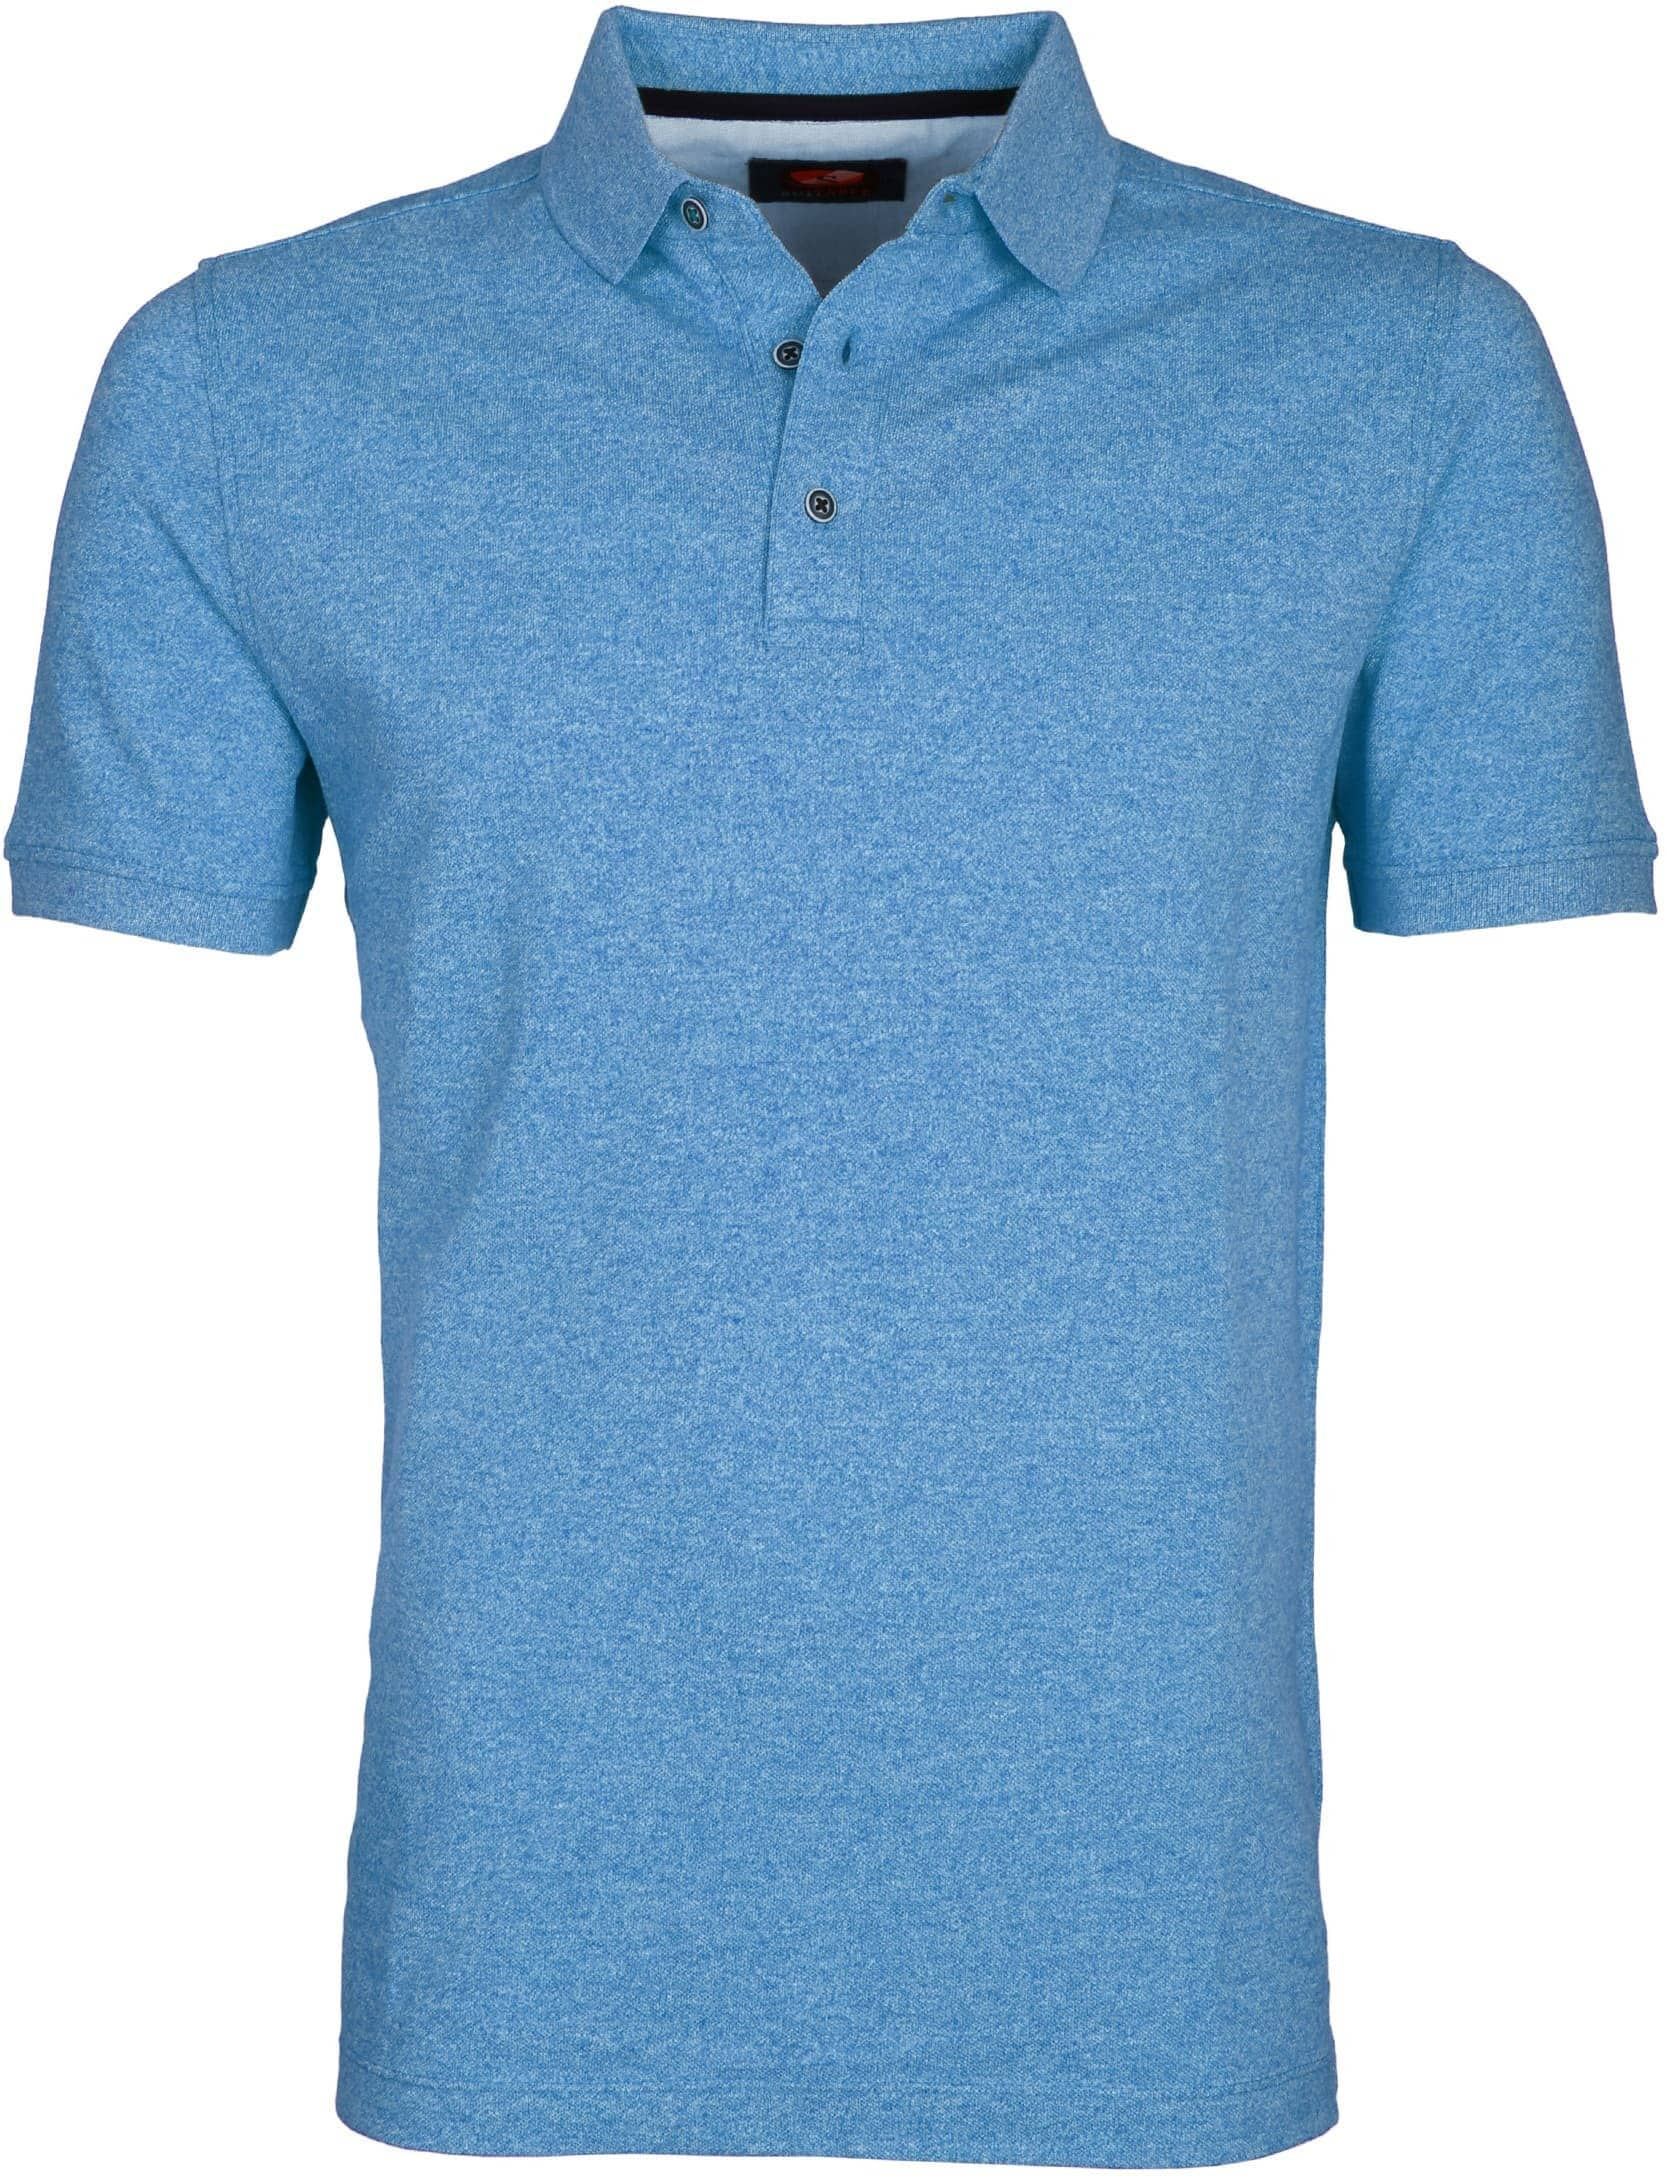 Suitable Poloshirt Jaspe Hellblau foto 0